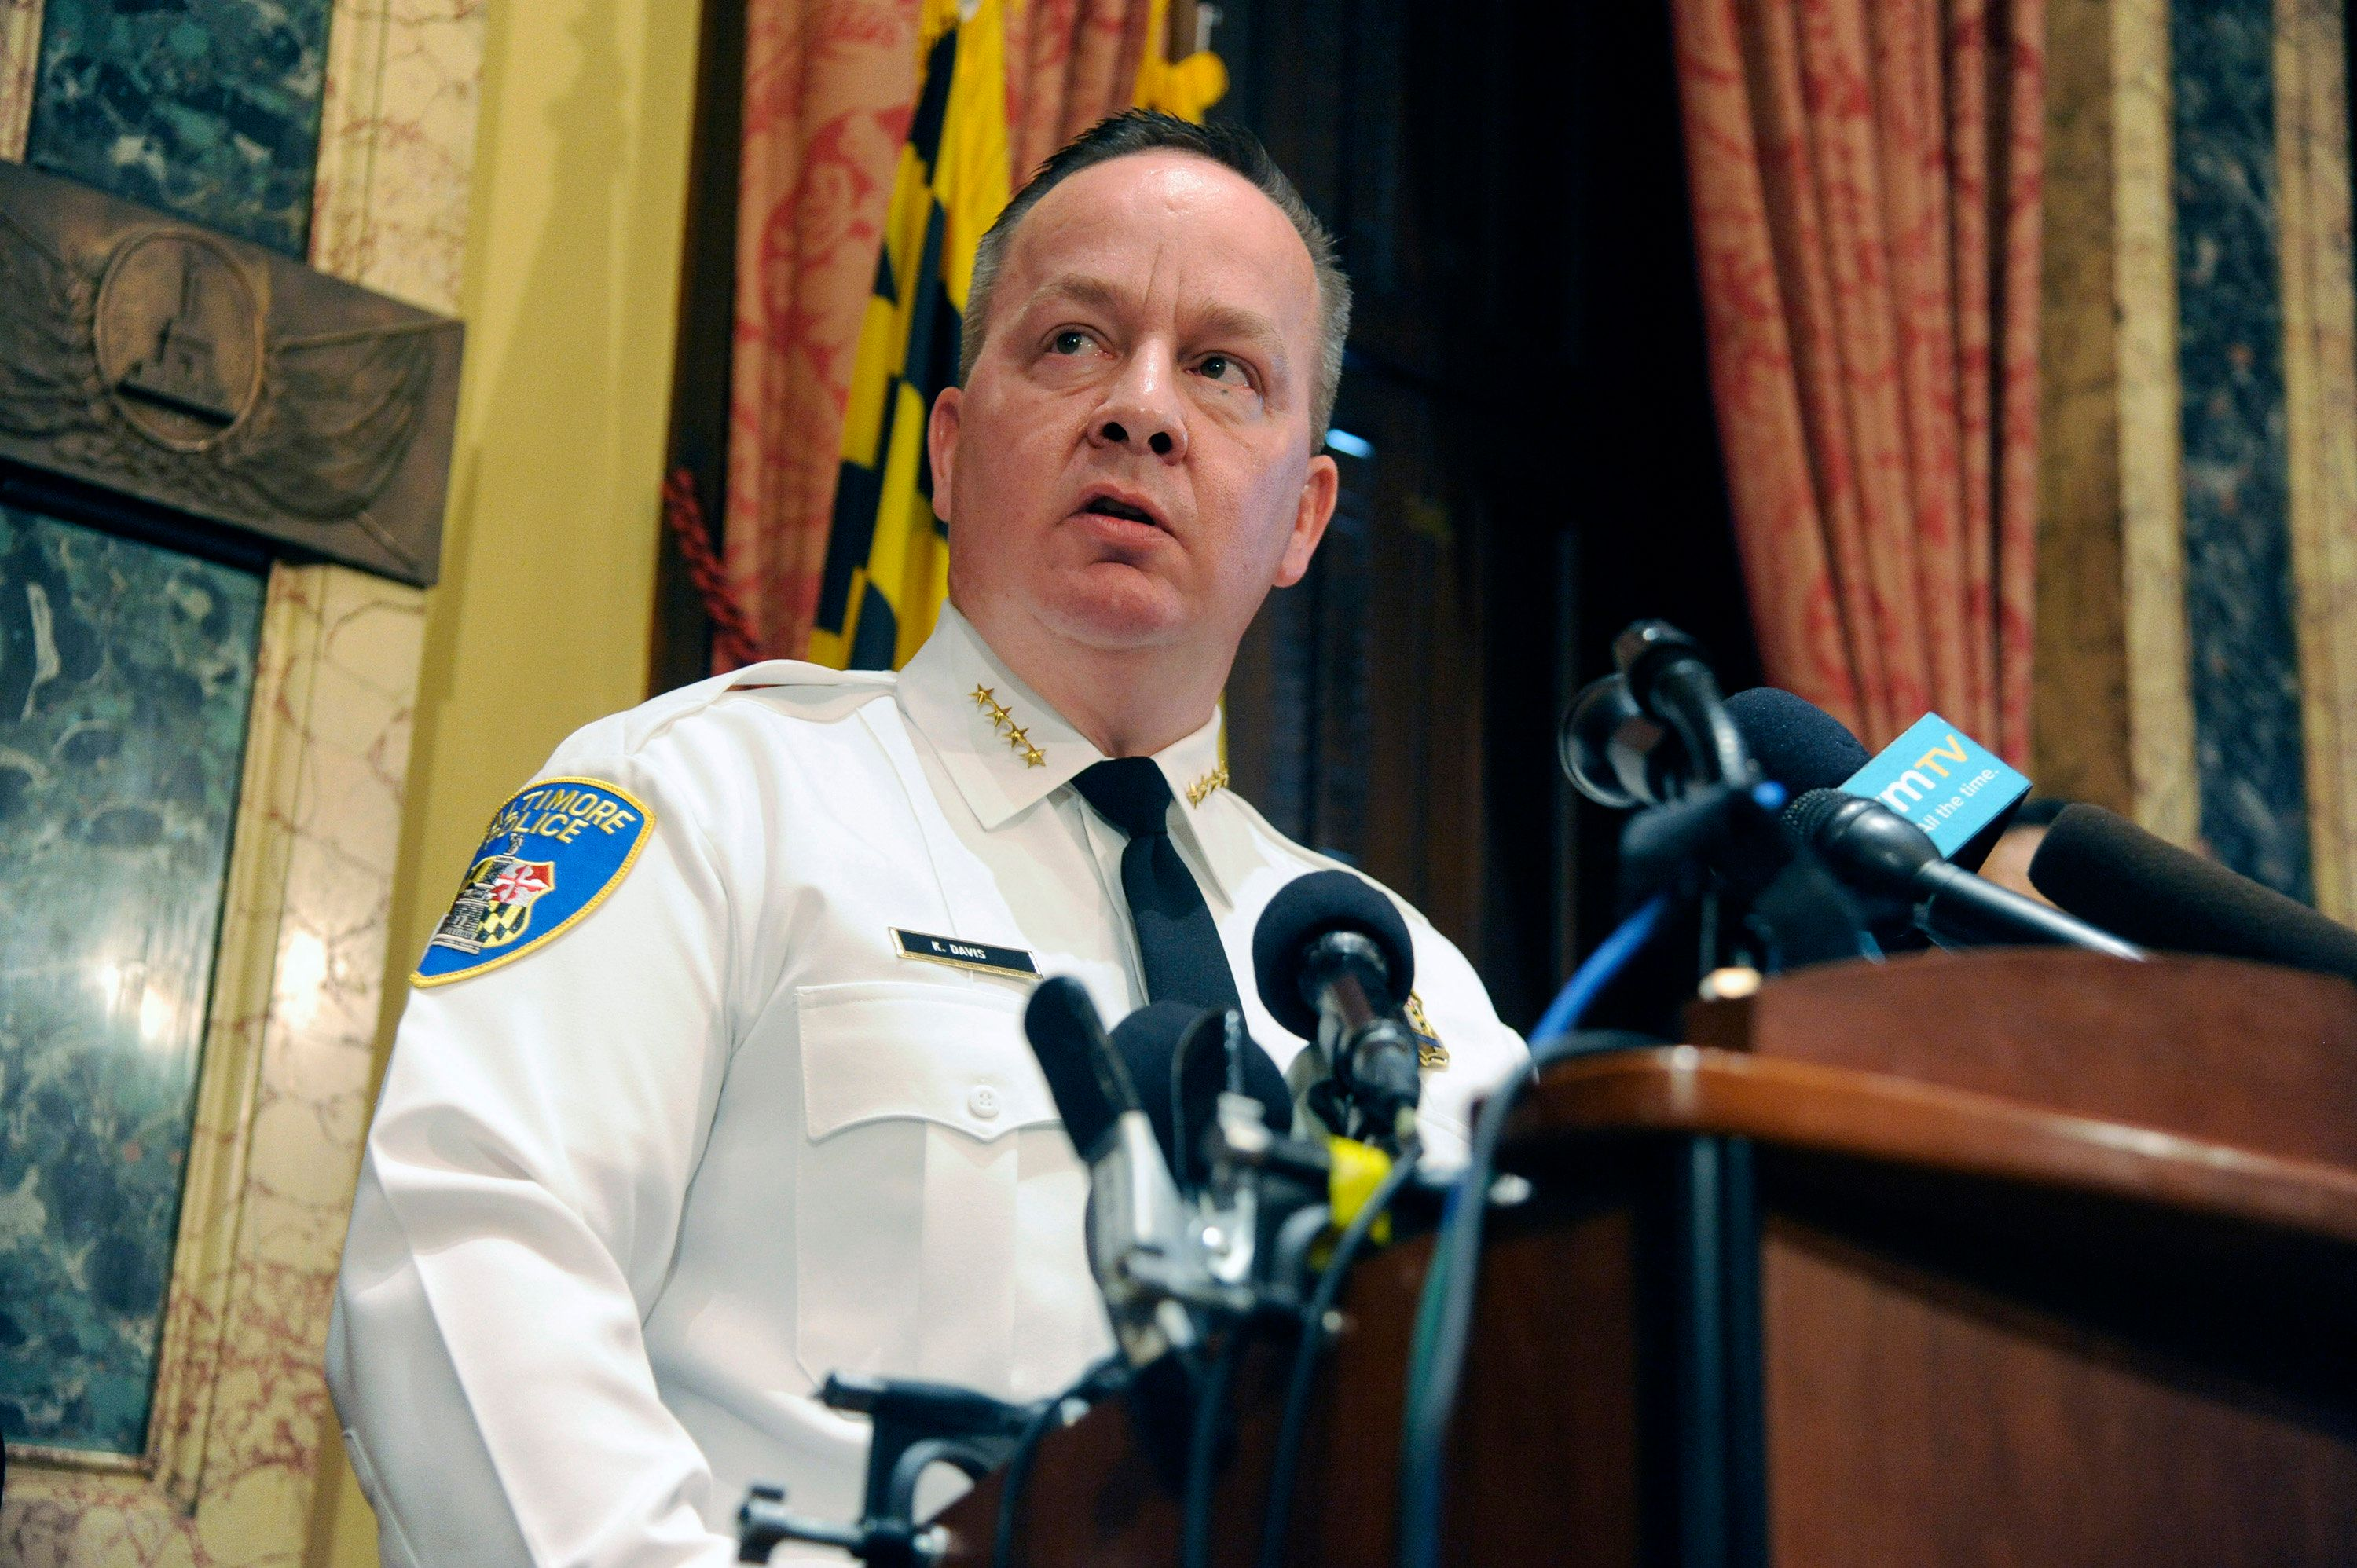 Baltimore Police Commissioner Kevin Davis delivers a statement during a news conference at City Hall in response to a Justice Department report that finds the Baltimore CIty Police Department has routinely violated the constitutional rights of residents Wednesday, Aug. 10, 2016 in Baltimore, Md. (Kim Hairston/Baltimore Sun/TNS via Getty Images)